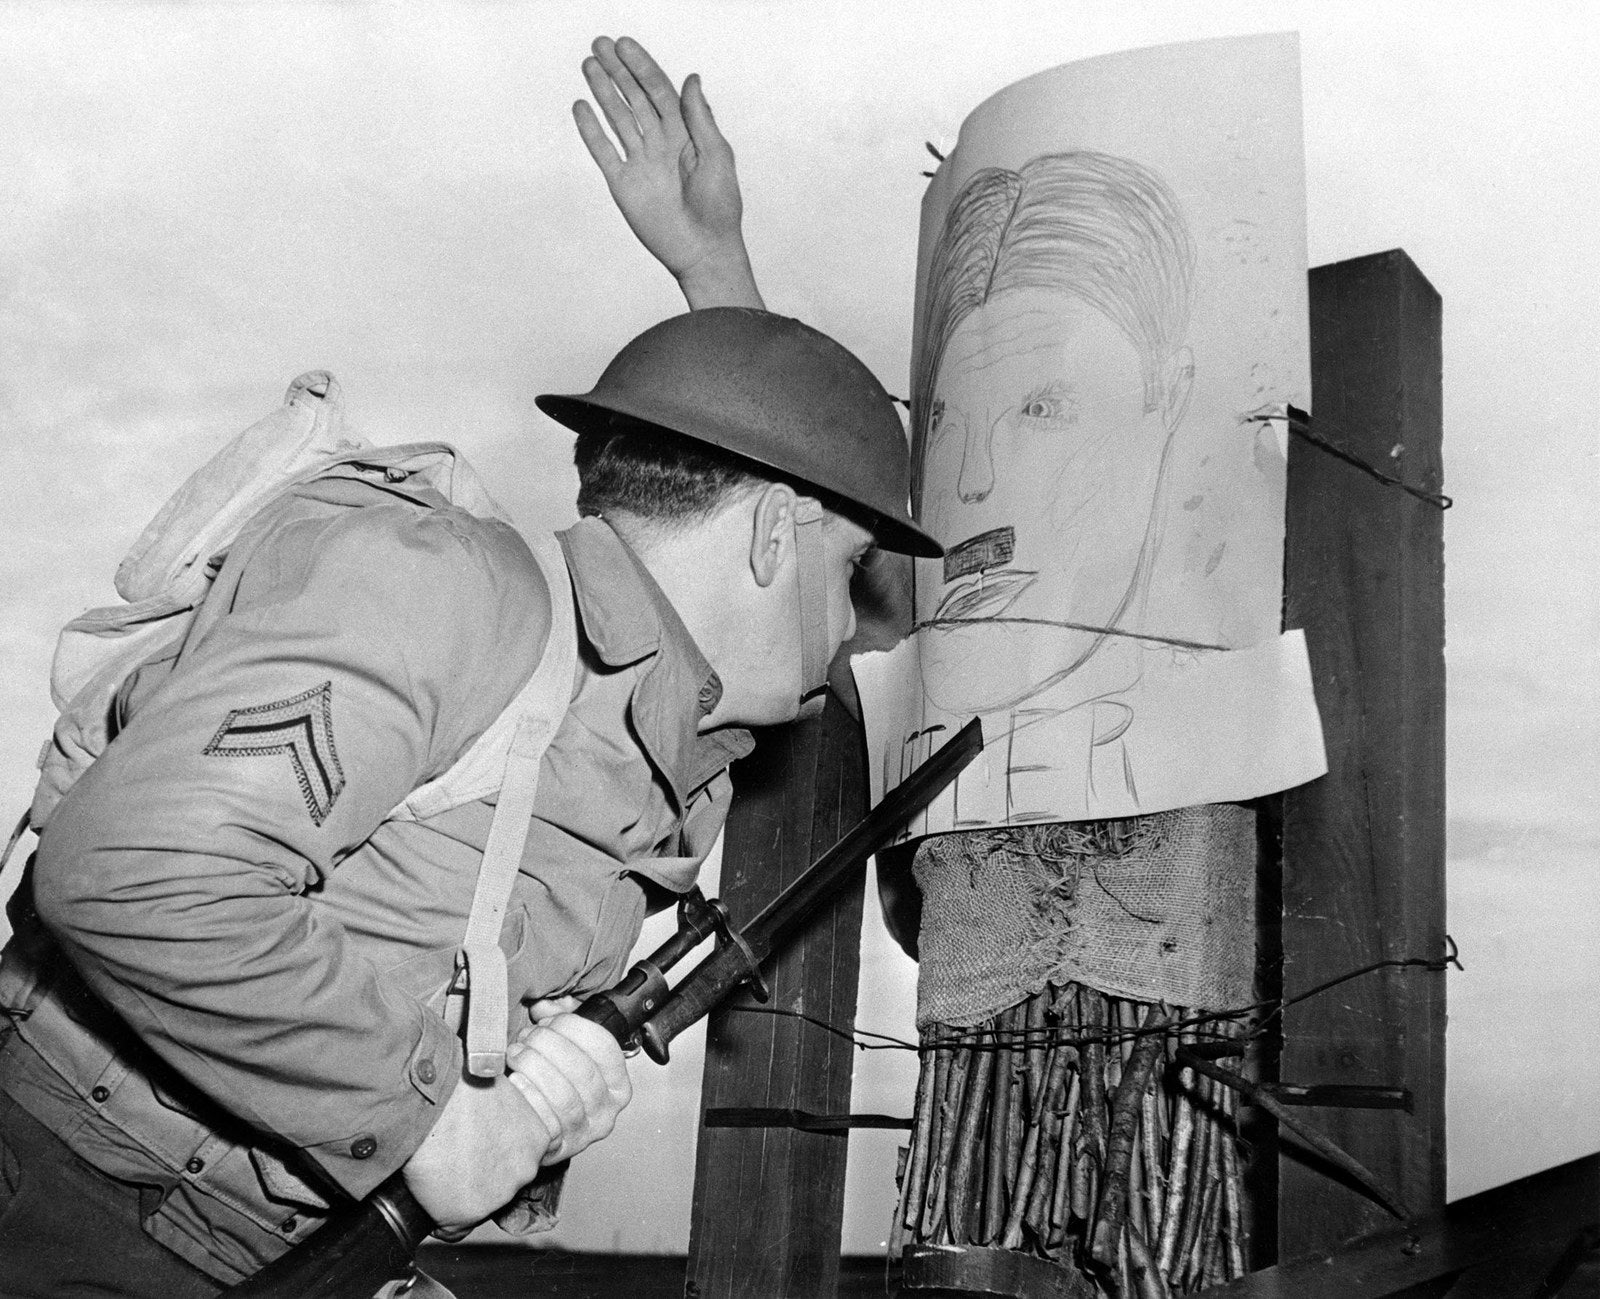 A soldier trains with his bayonet on a dummy resembling Adolf Hitler on Dec. 19, 1941.